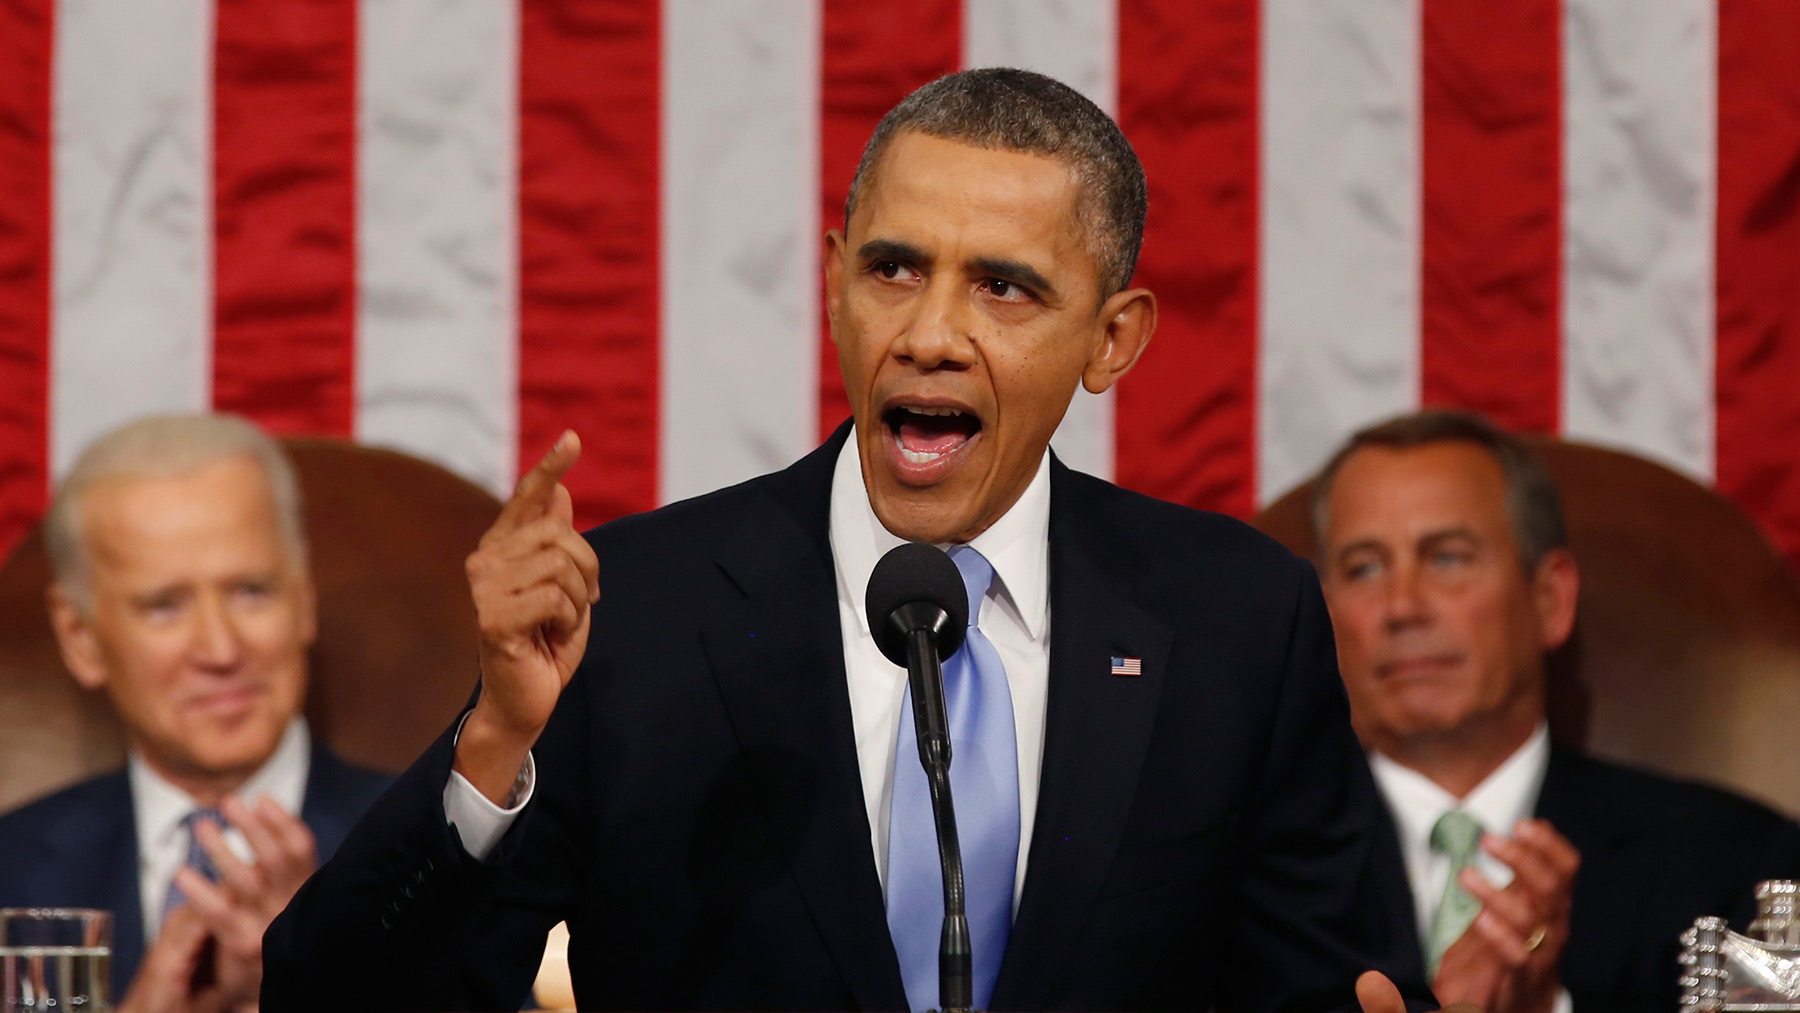 U.S. President Barack Obama delivers his State of the Union speech on Capitol Hill in Washington, January 28, 2014.